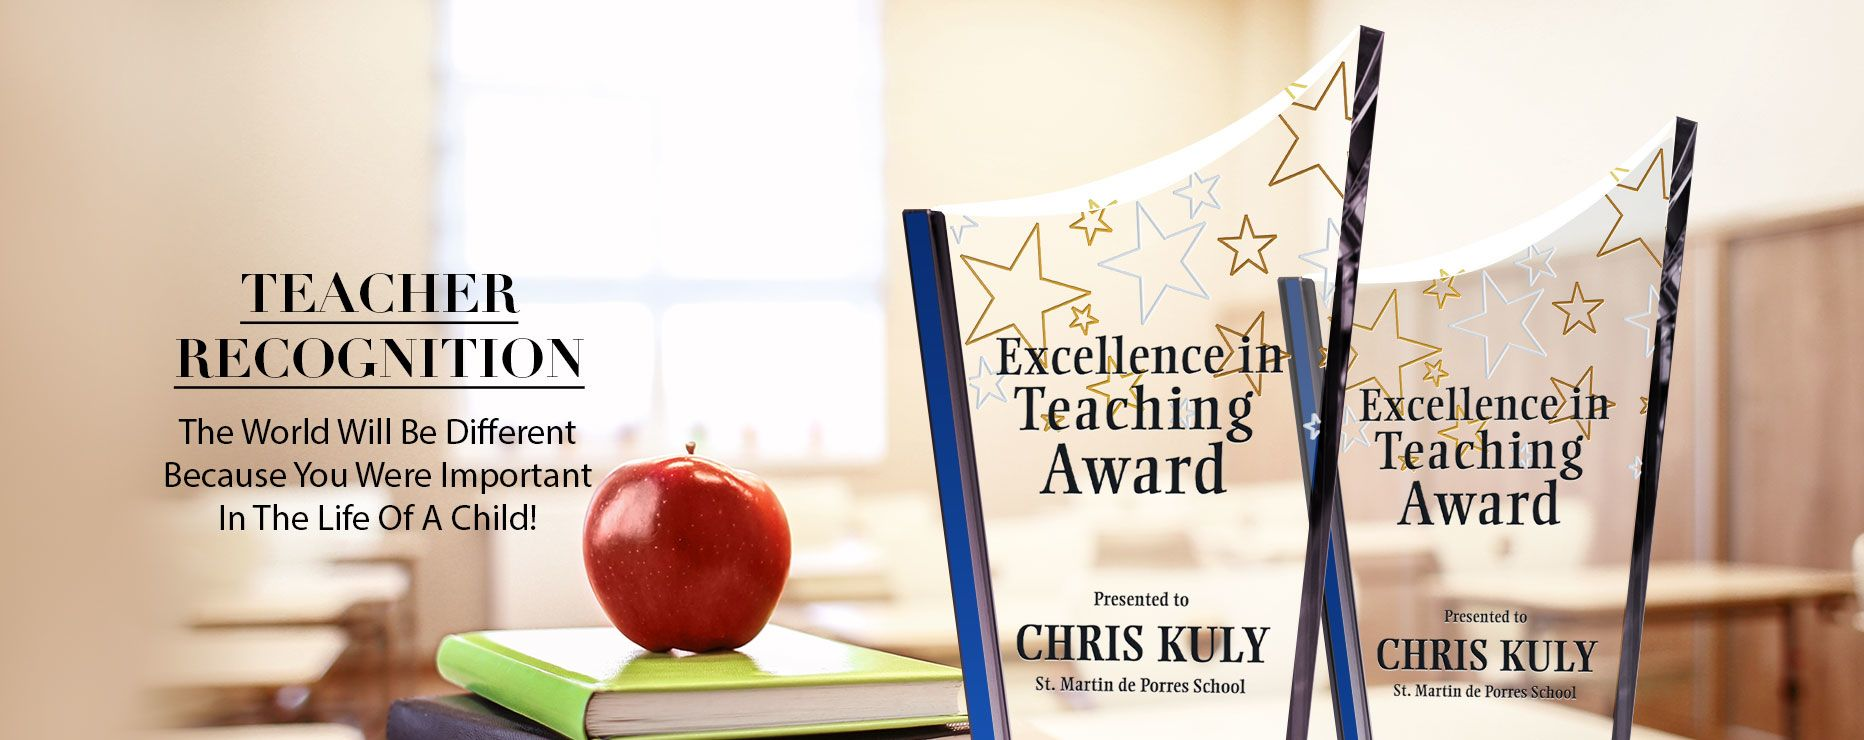 teacher recognition award wording ideas and sample layouts